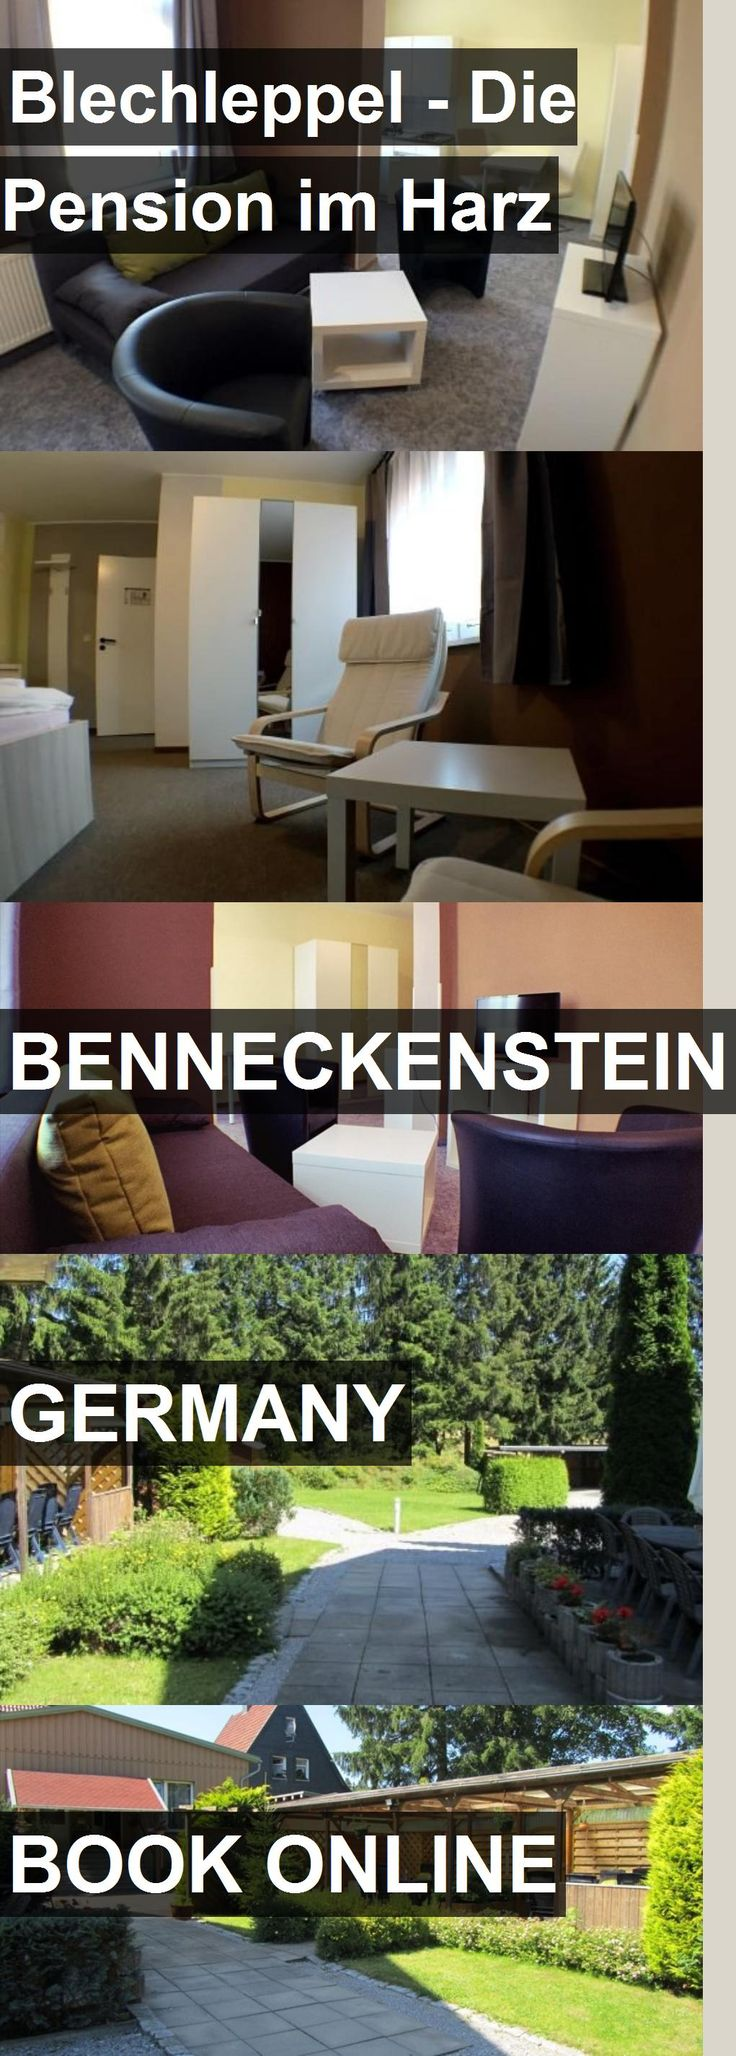 Hotel Blechleppel - Die Pension im Harz in Benneckenstein, Germany. For more information, photos, reviews and best prices please follow the link. #Germany #Benneckenstein #hotel #travel #vacation